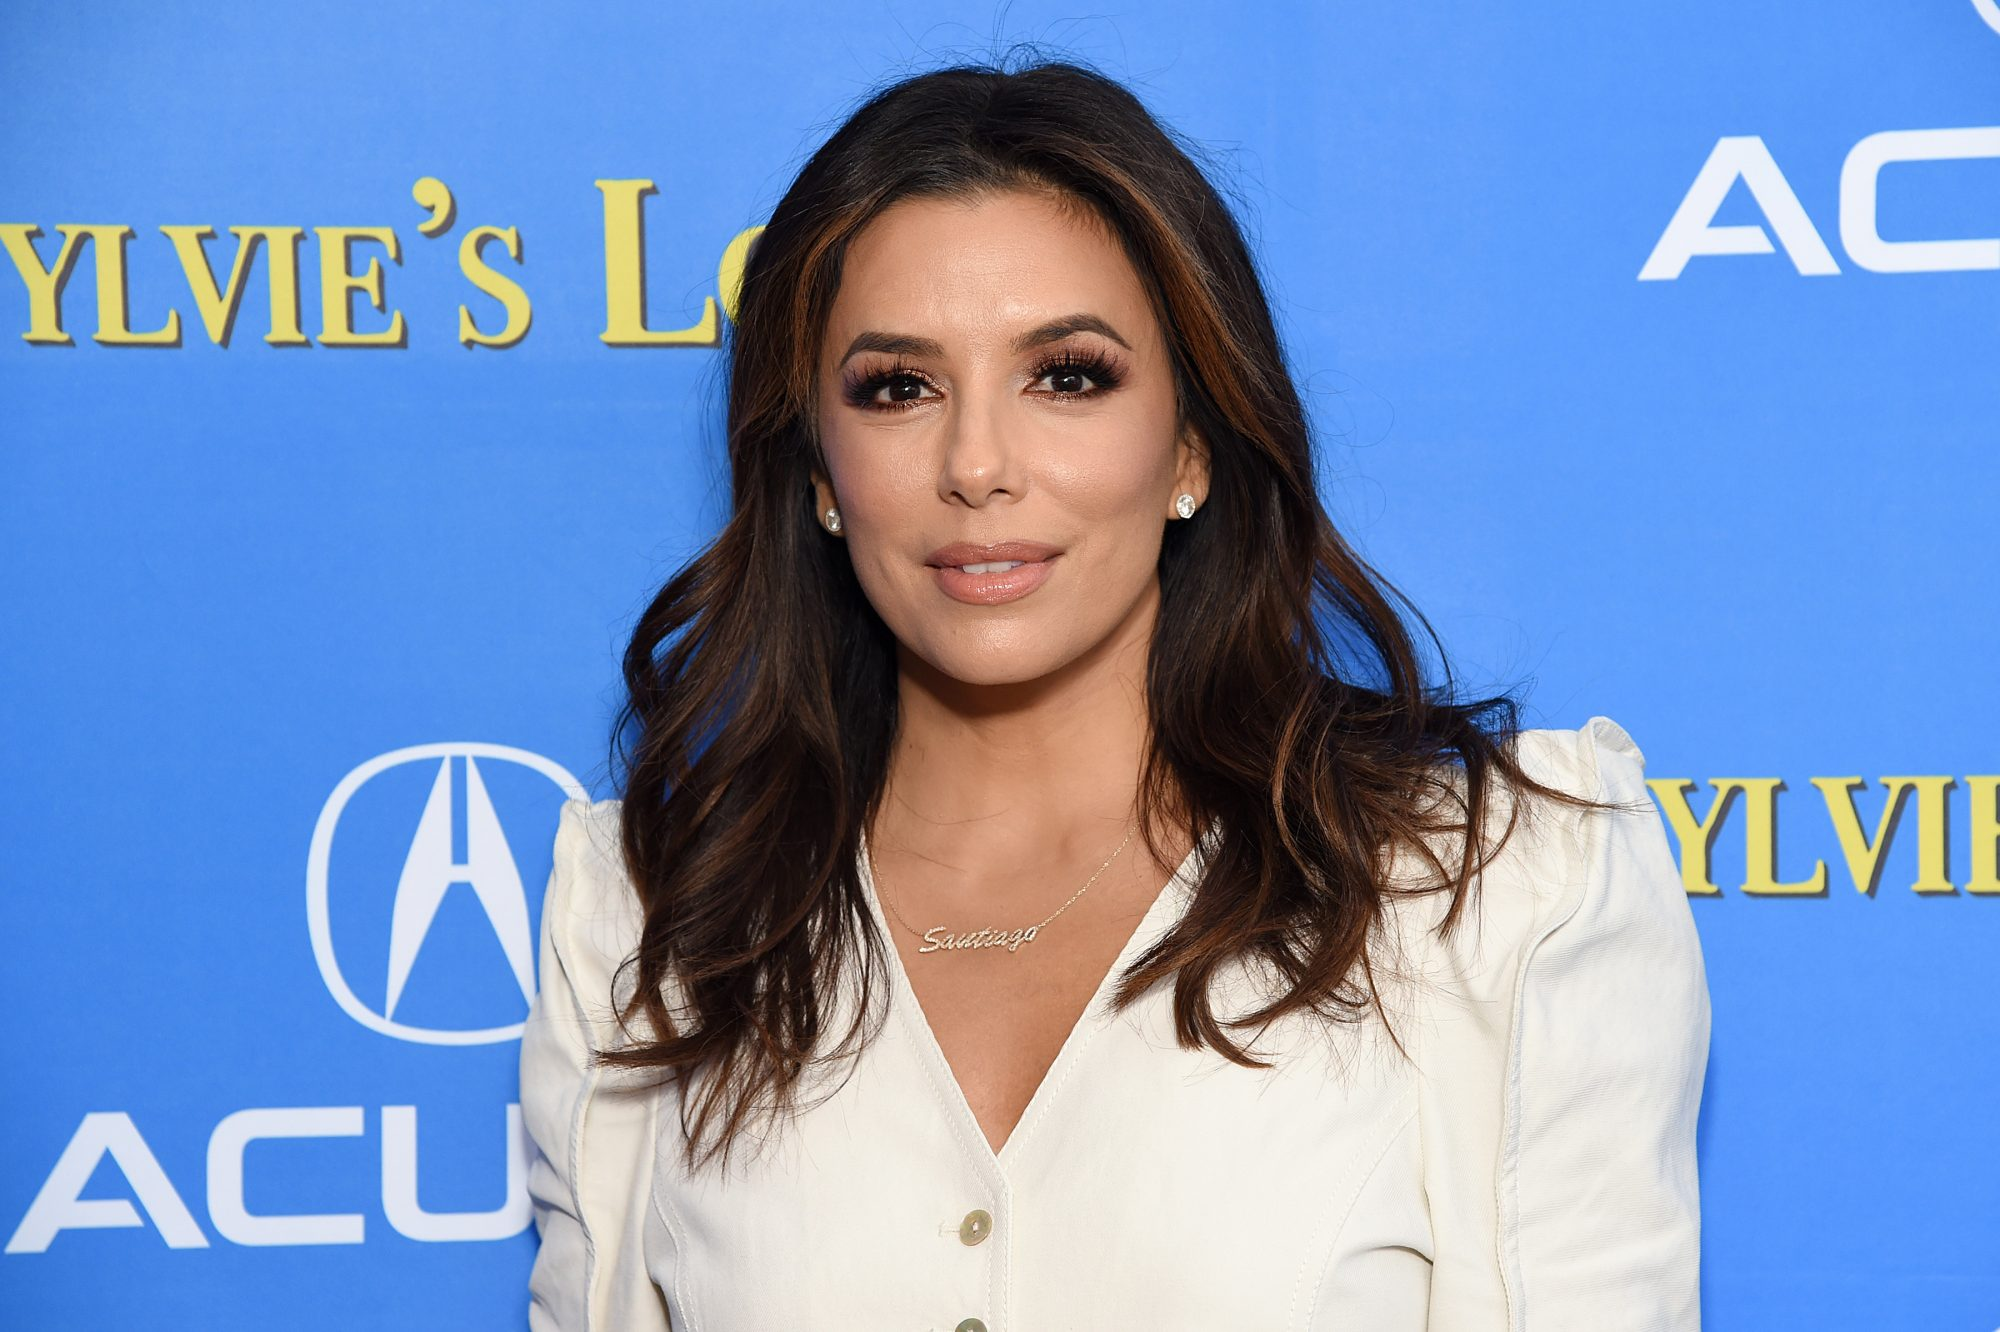 eva longoria latina women comment